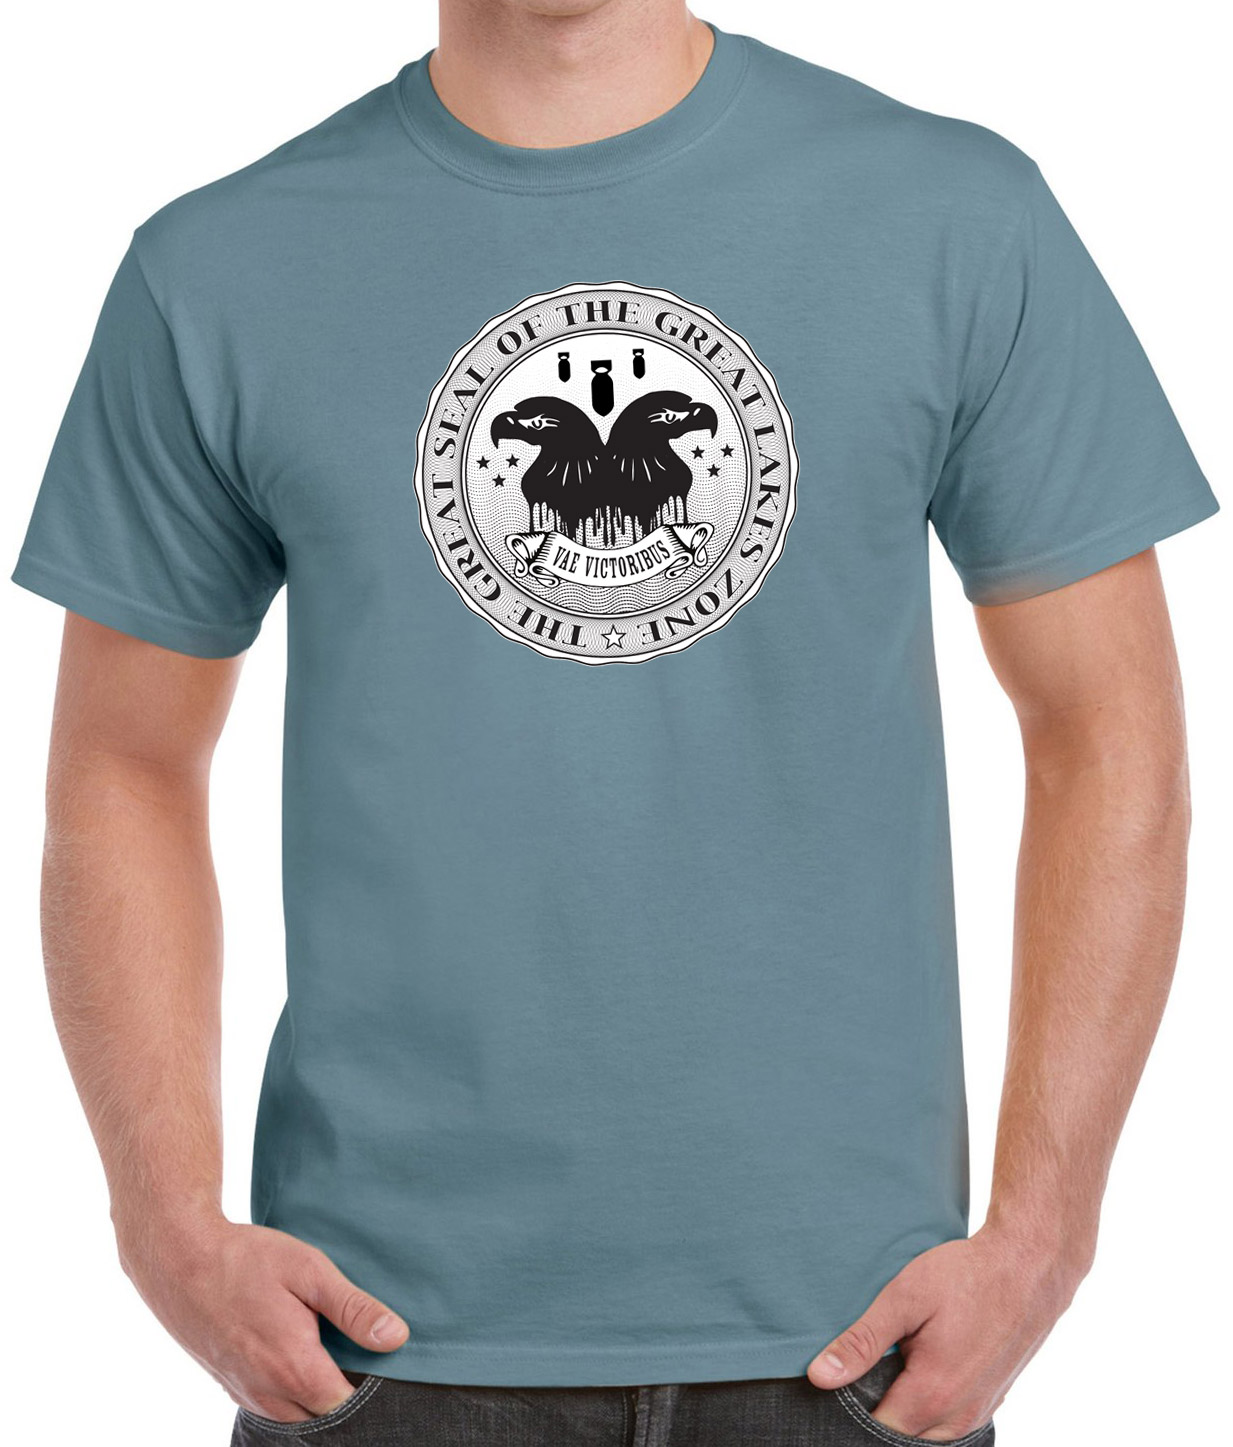 Stone blue t-shirt with Great Seal of the Great Lakes Zone.